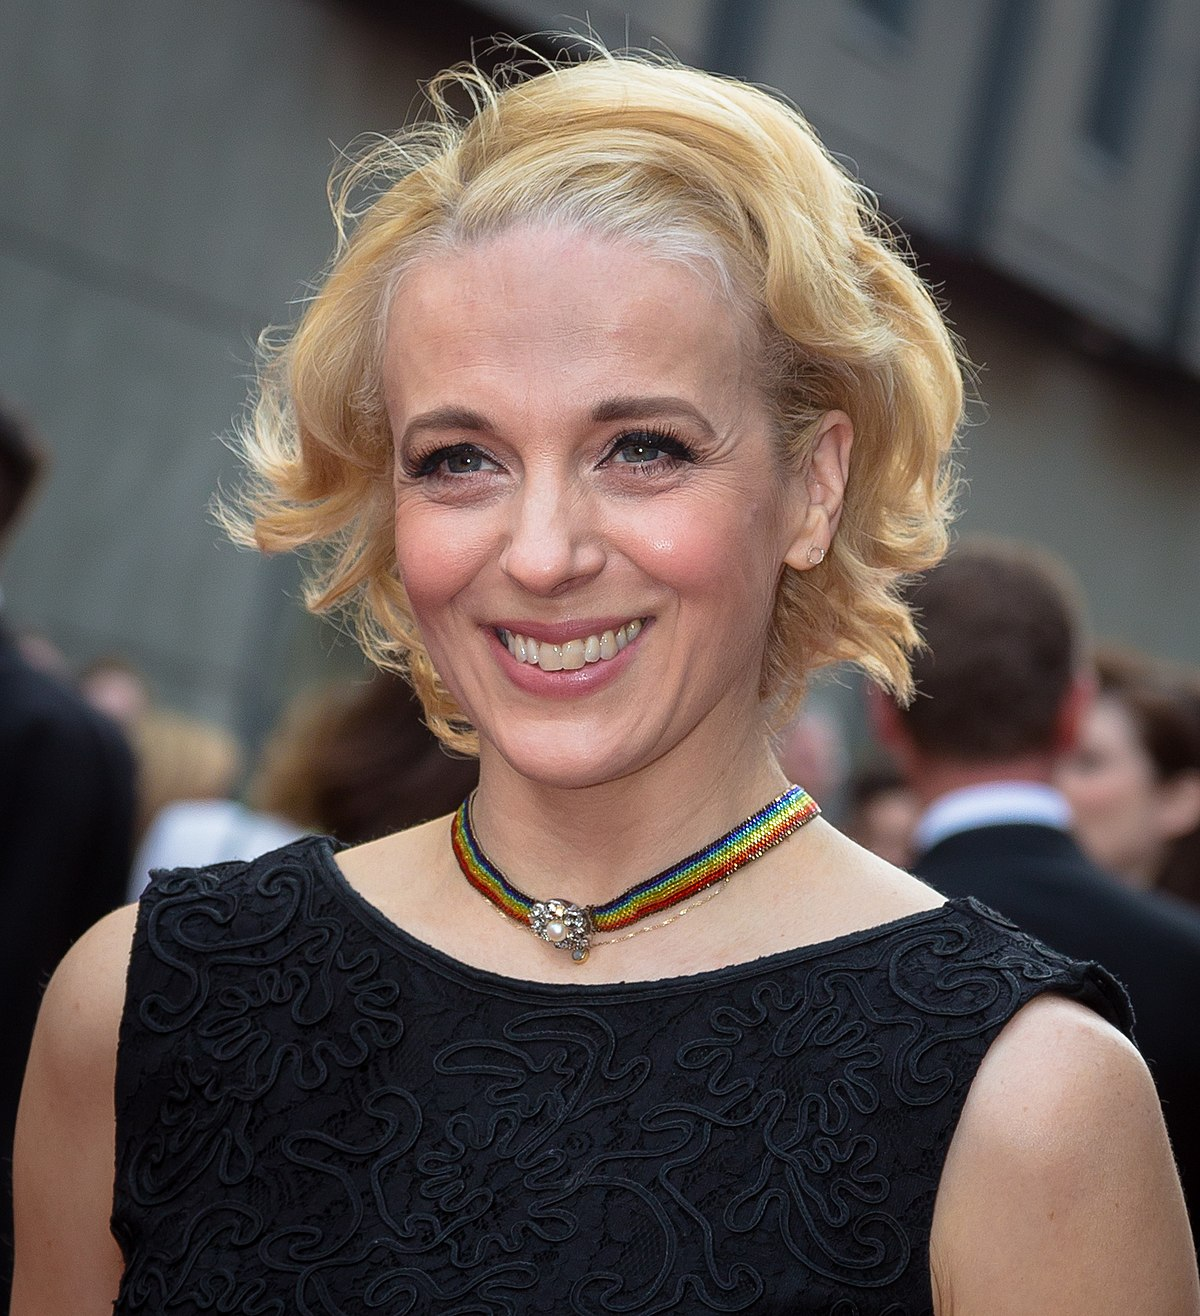 Amanda Abbington (born 1974)